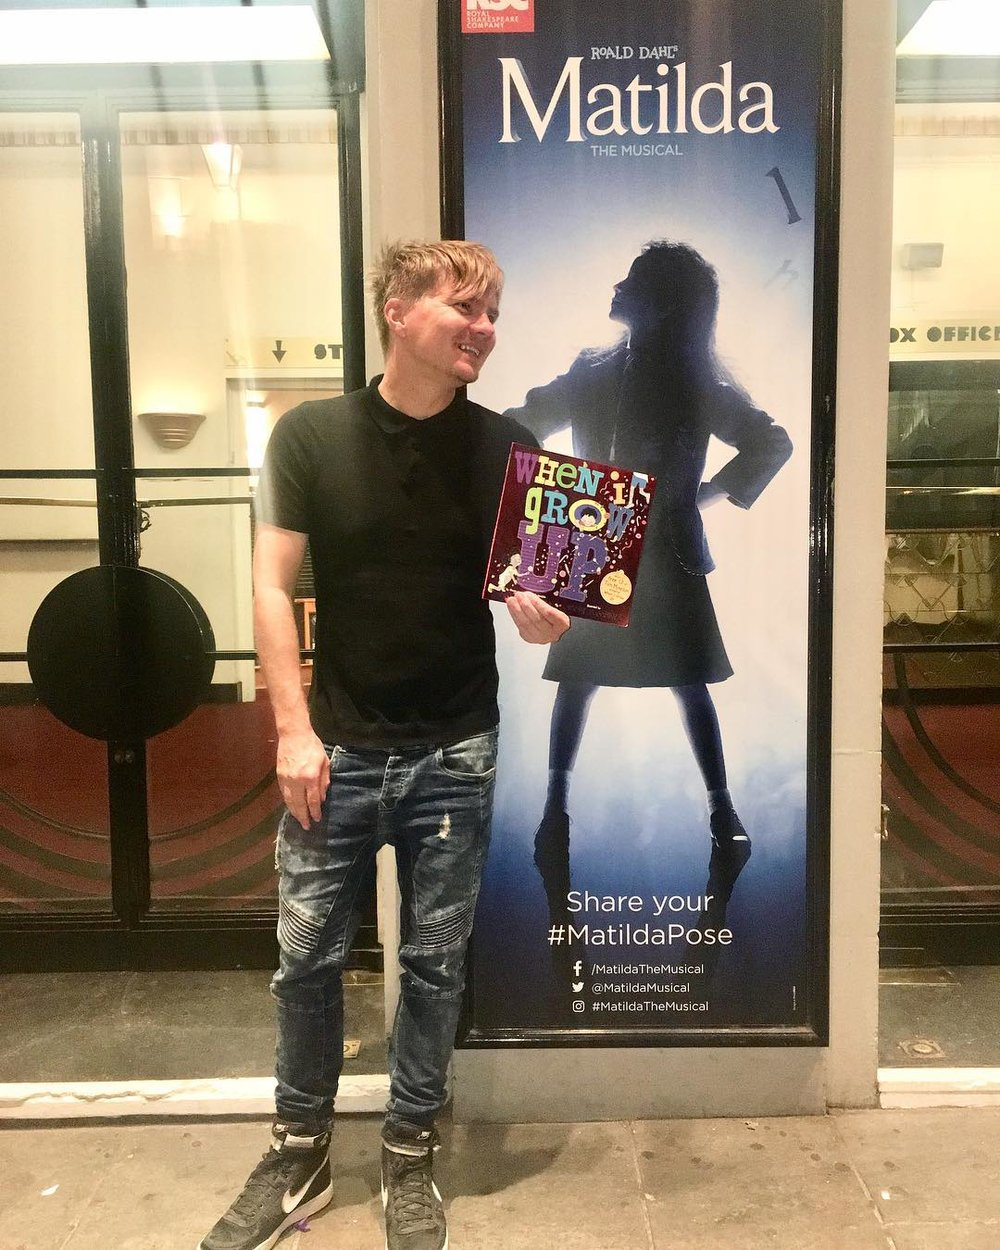 My publisher treated me to Matilda the Musical in the West End. Not really an event, but for me it was a momentous experience.